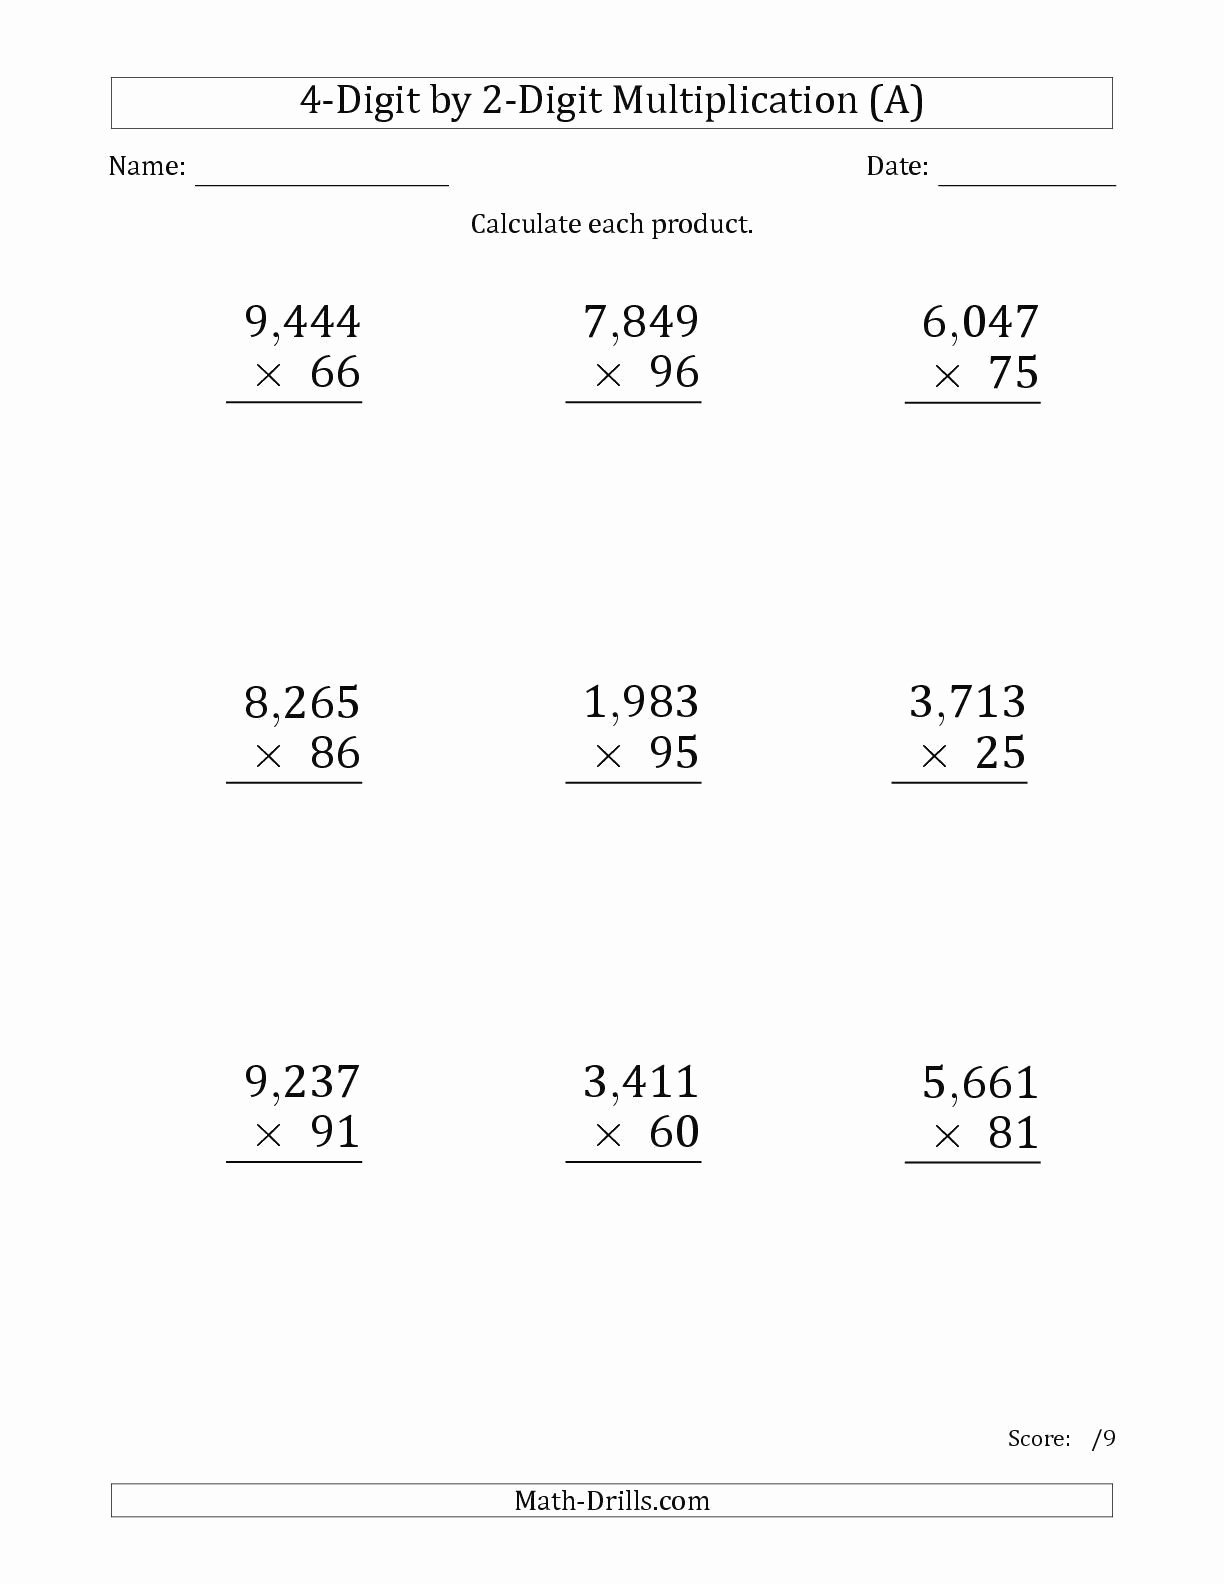 Free Printable Multiplication Worksheets 5th Grade New 5th Grade Multiplication Worksheets for Printable 5th Grade